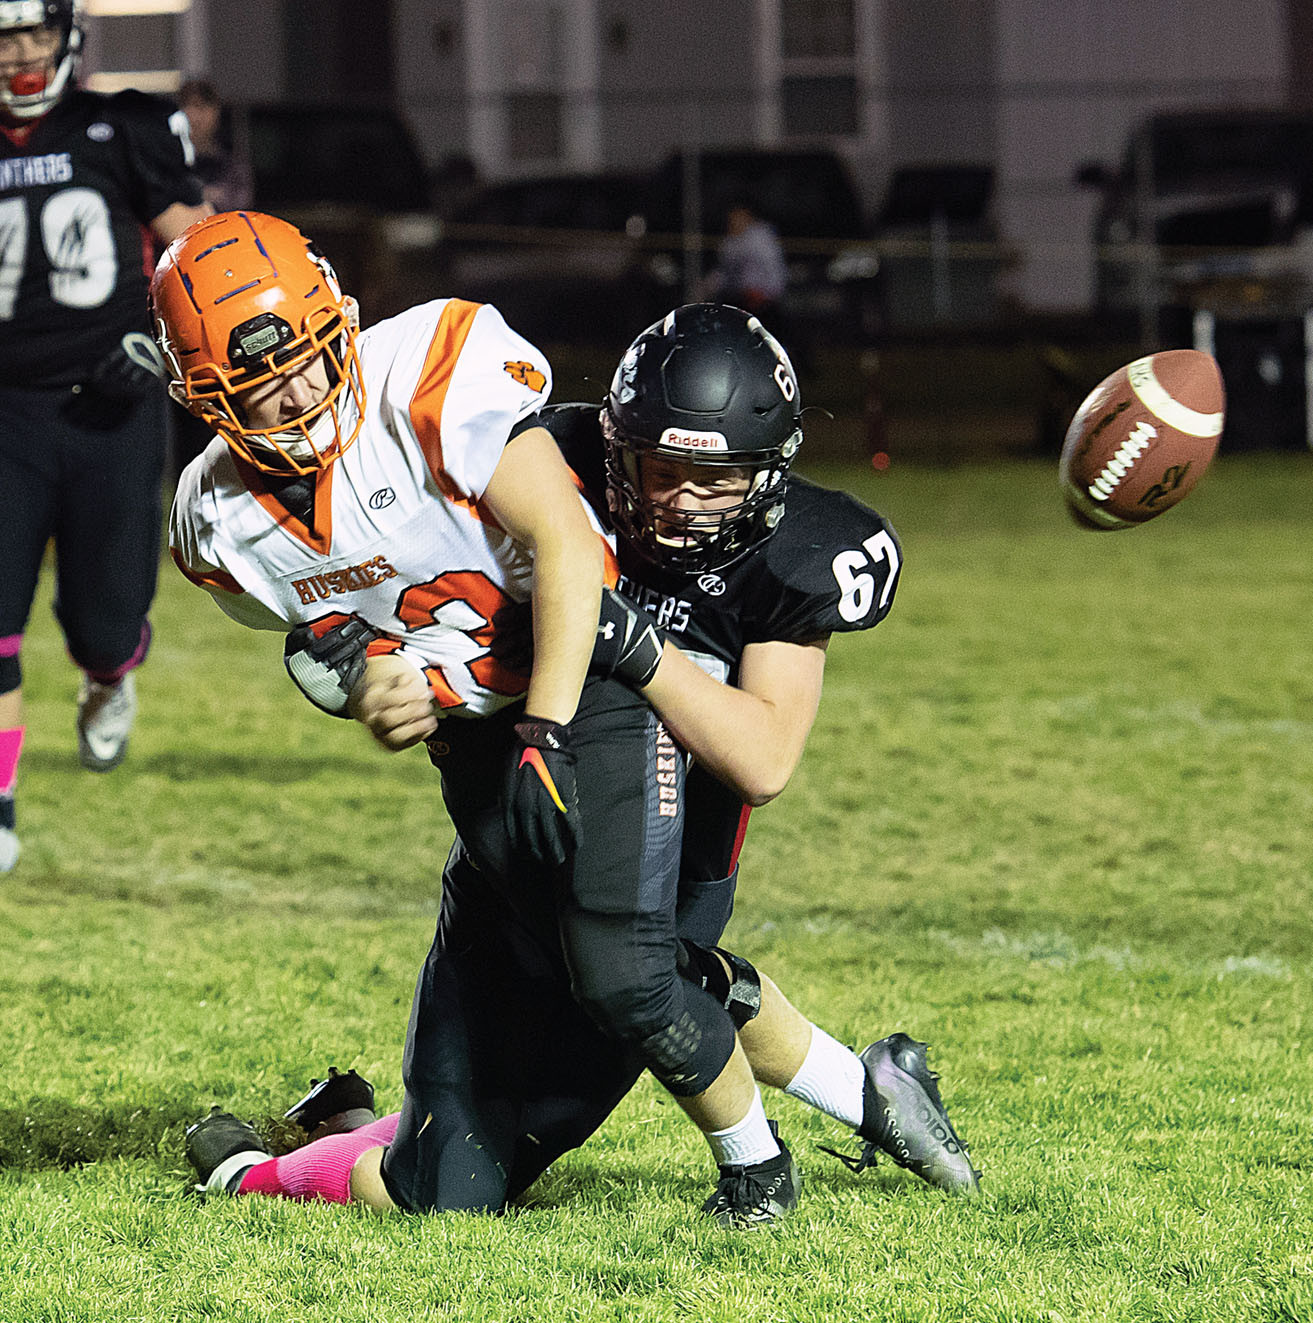 Photo by Bud Chenault  Park City's Eyan Jordet brings down an Absarokee player as the ball approaches.